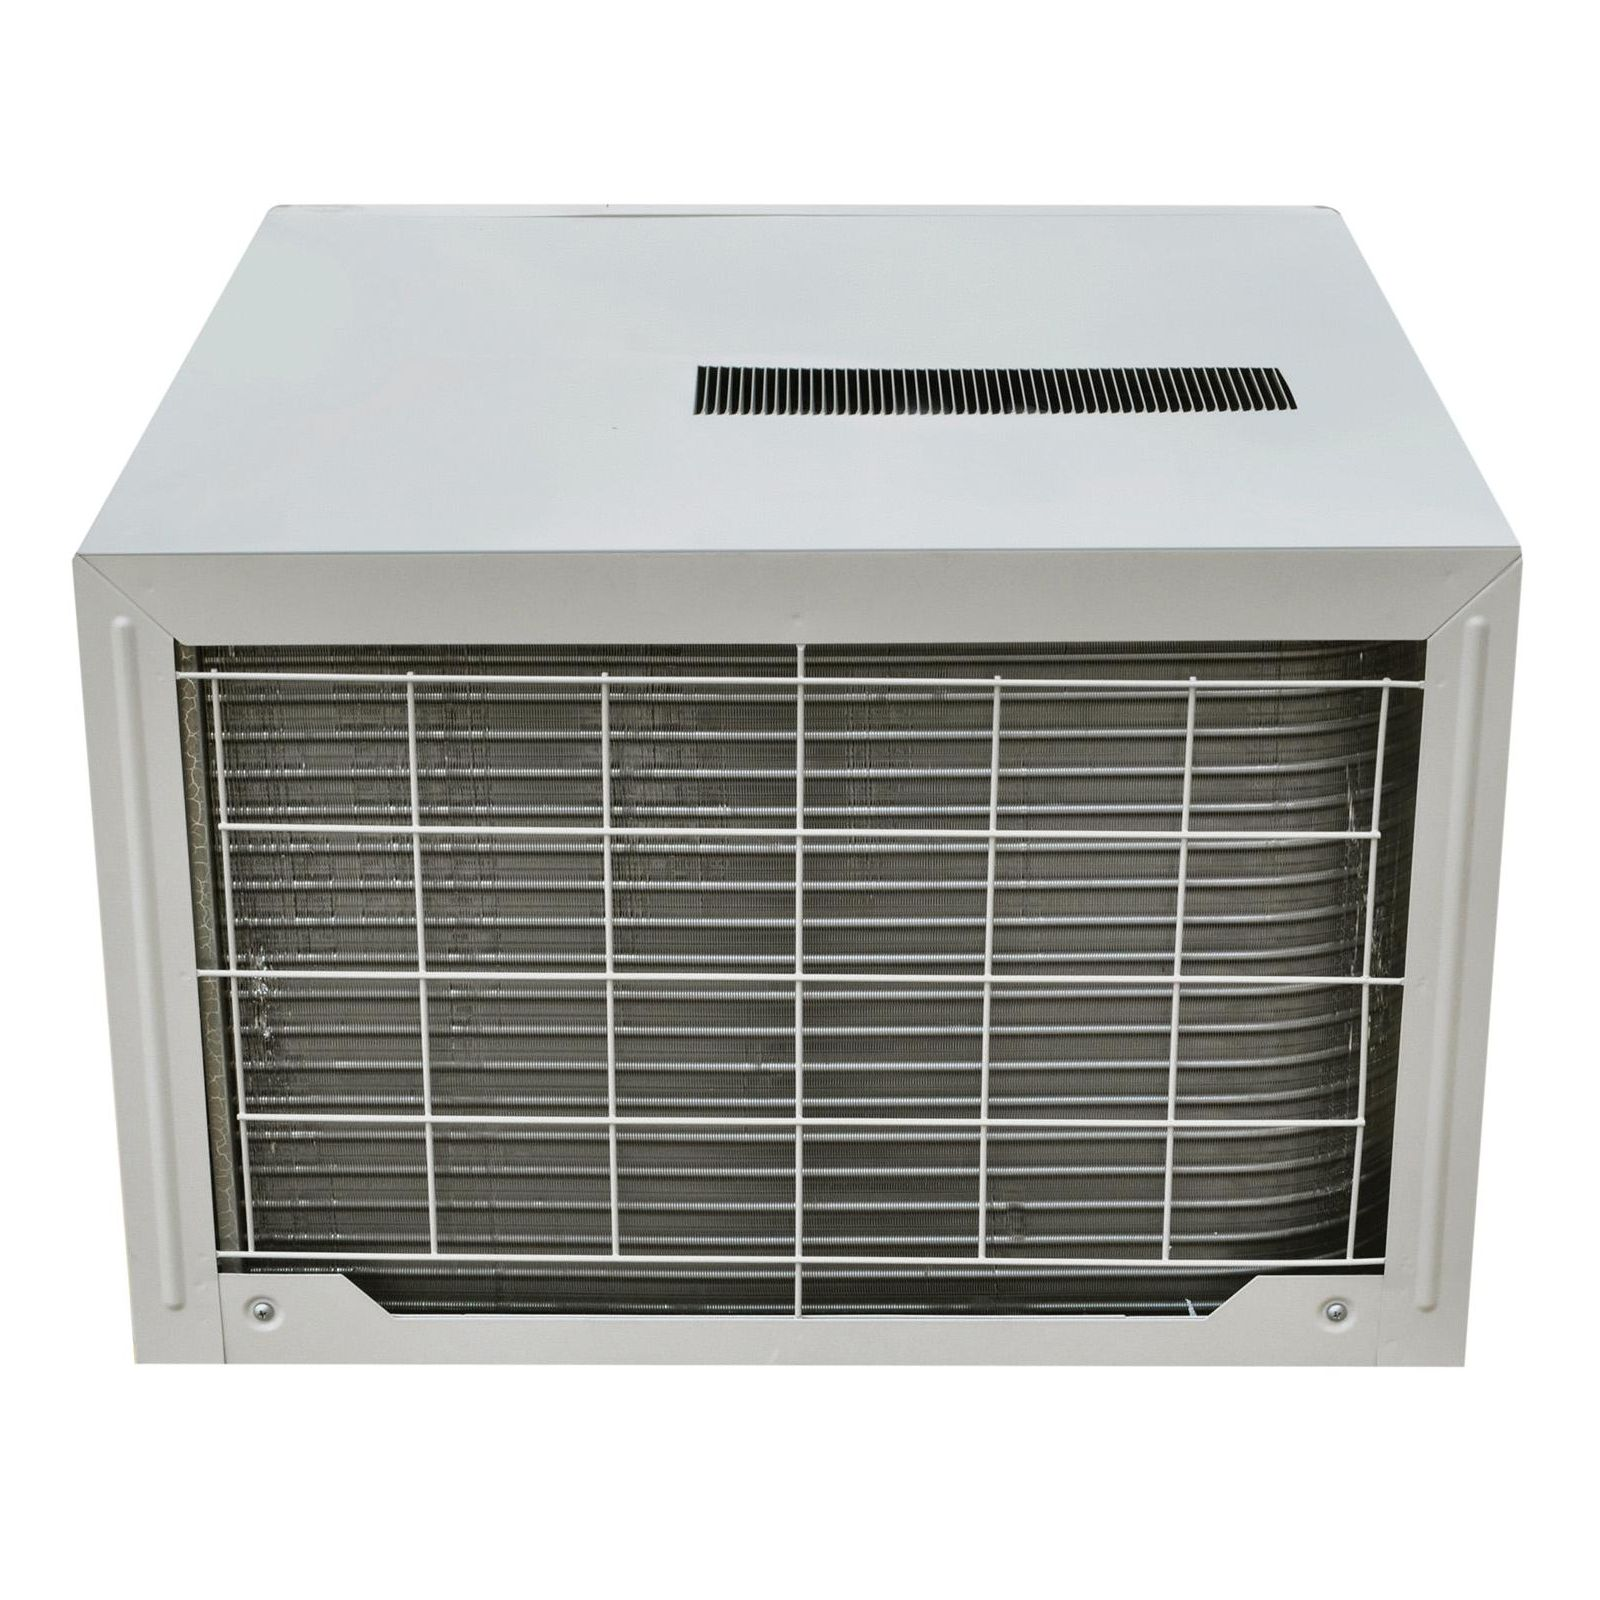 Prem i air eh0537 window unit air conditioner cooling only for 110v ac window unit